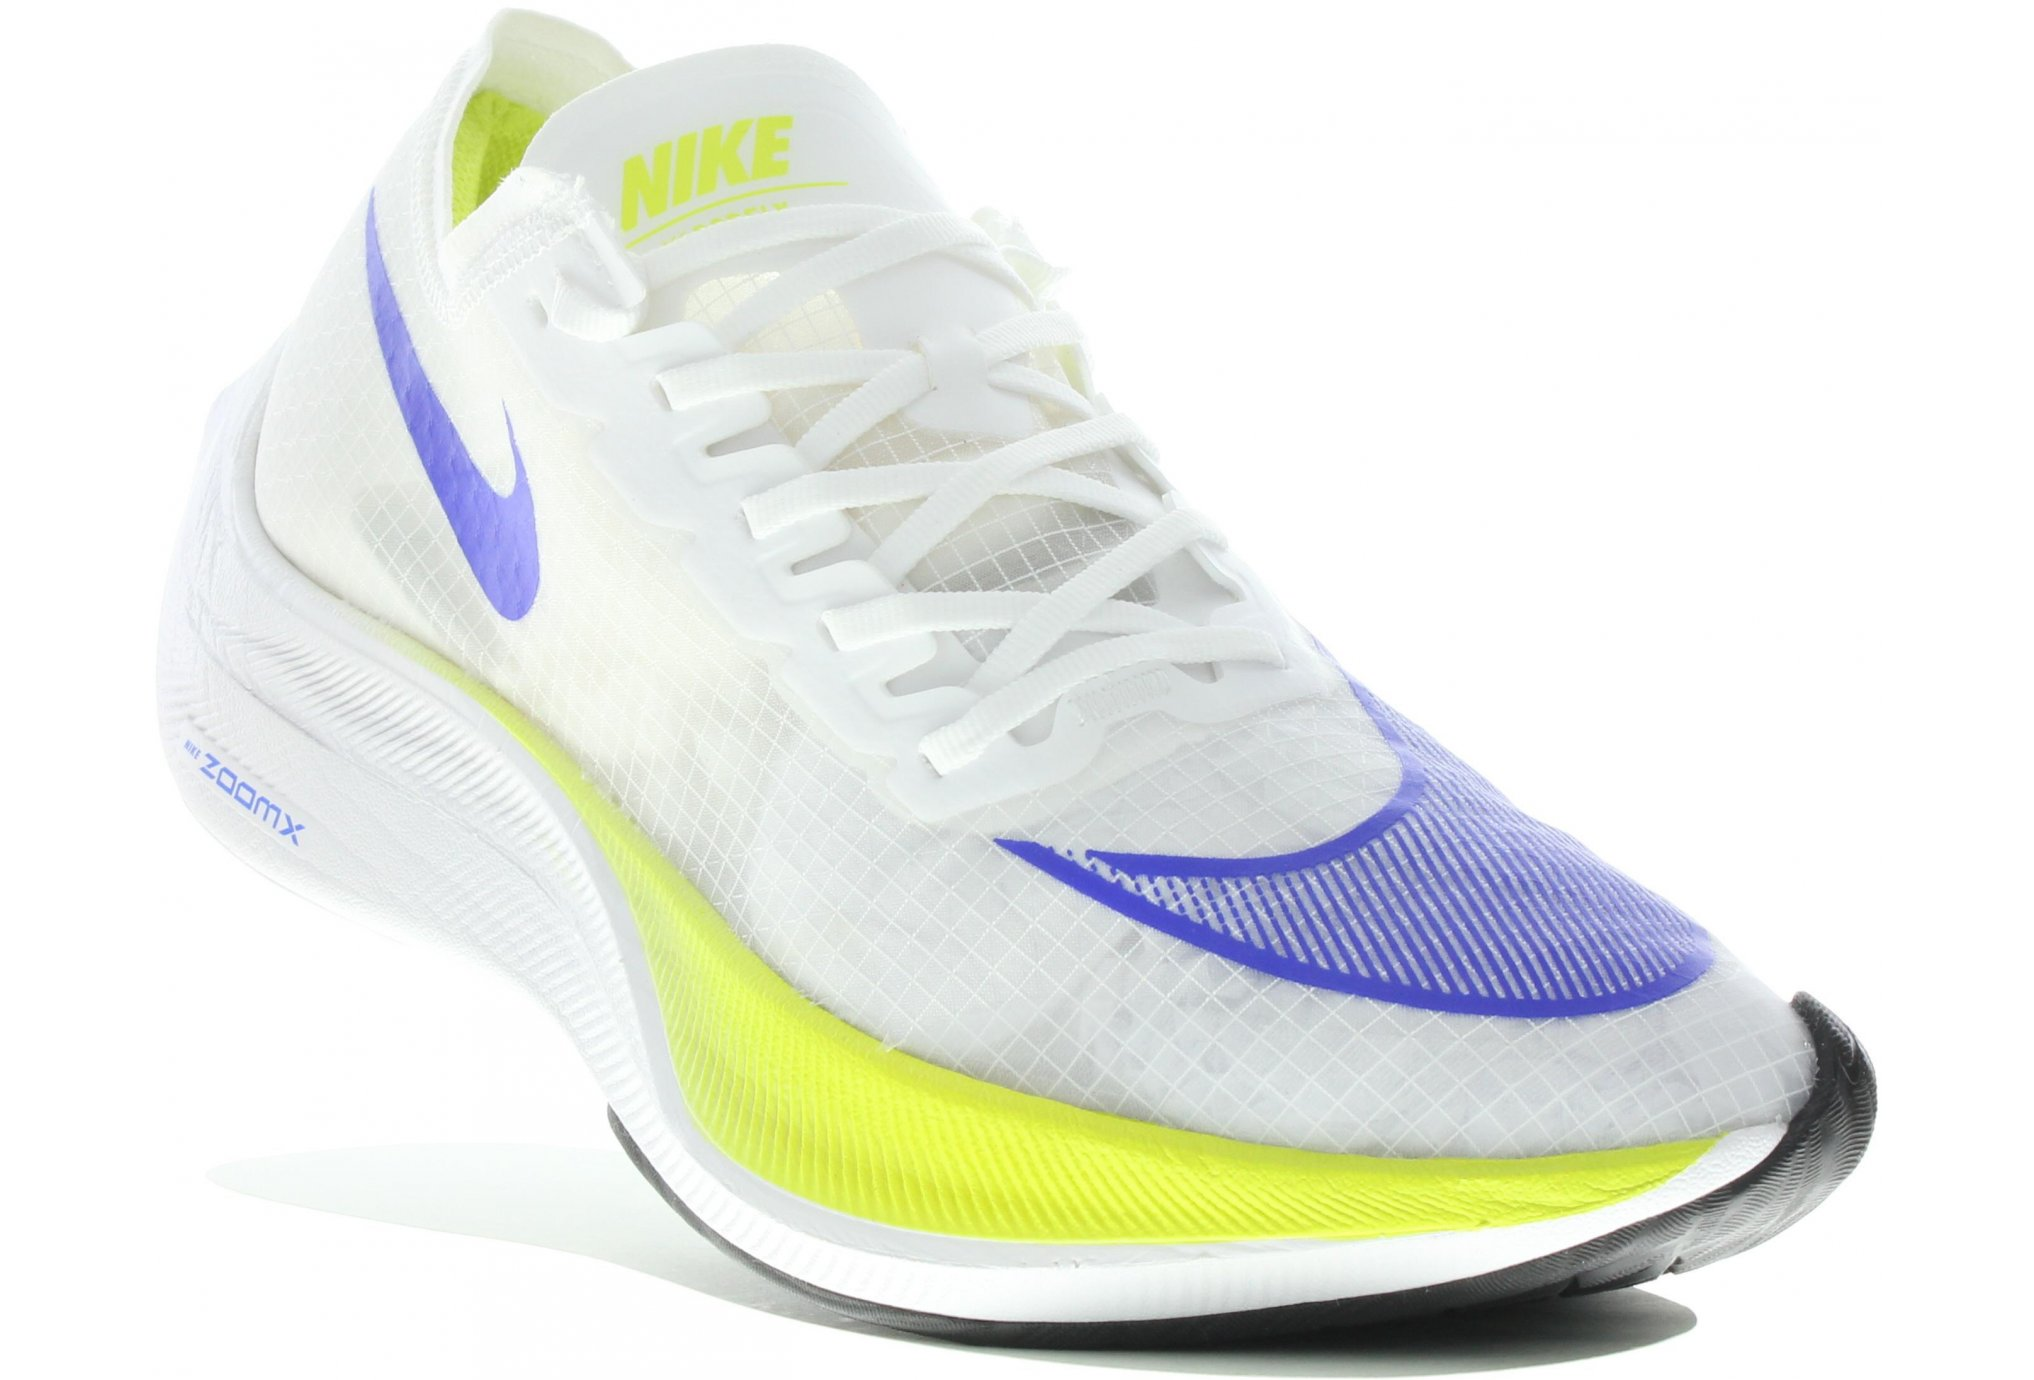 Nike ZoomX Vaporfly Next% Ekiden Chaussures homme